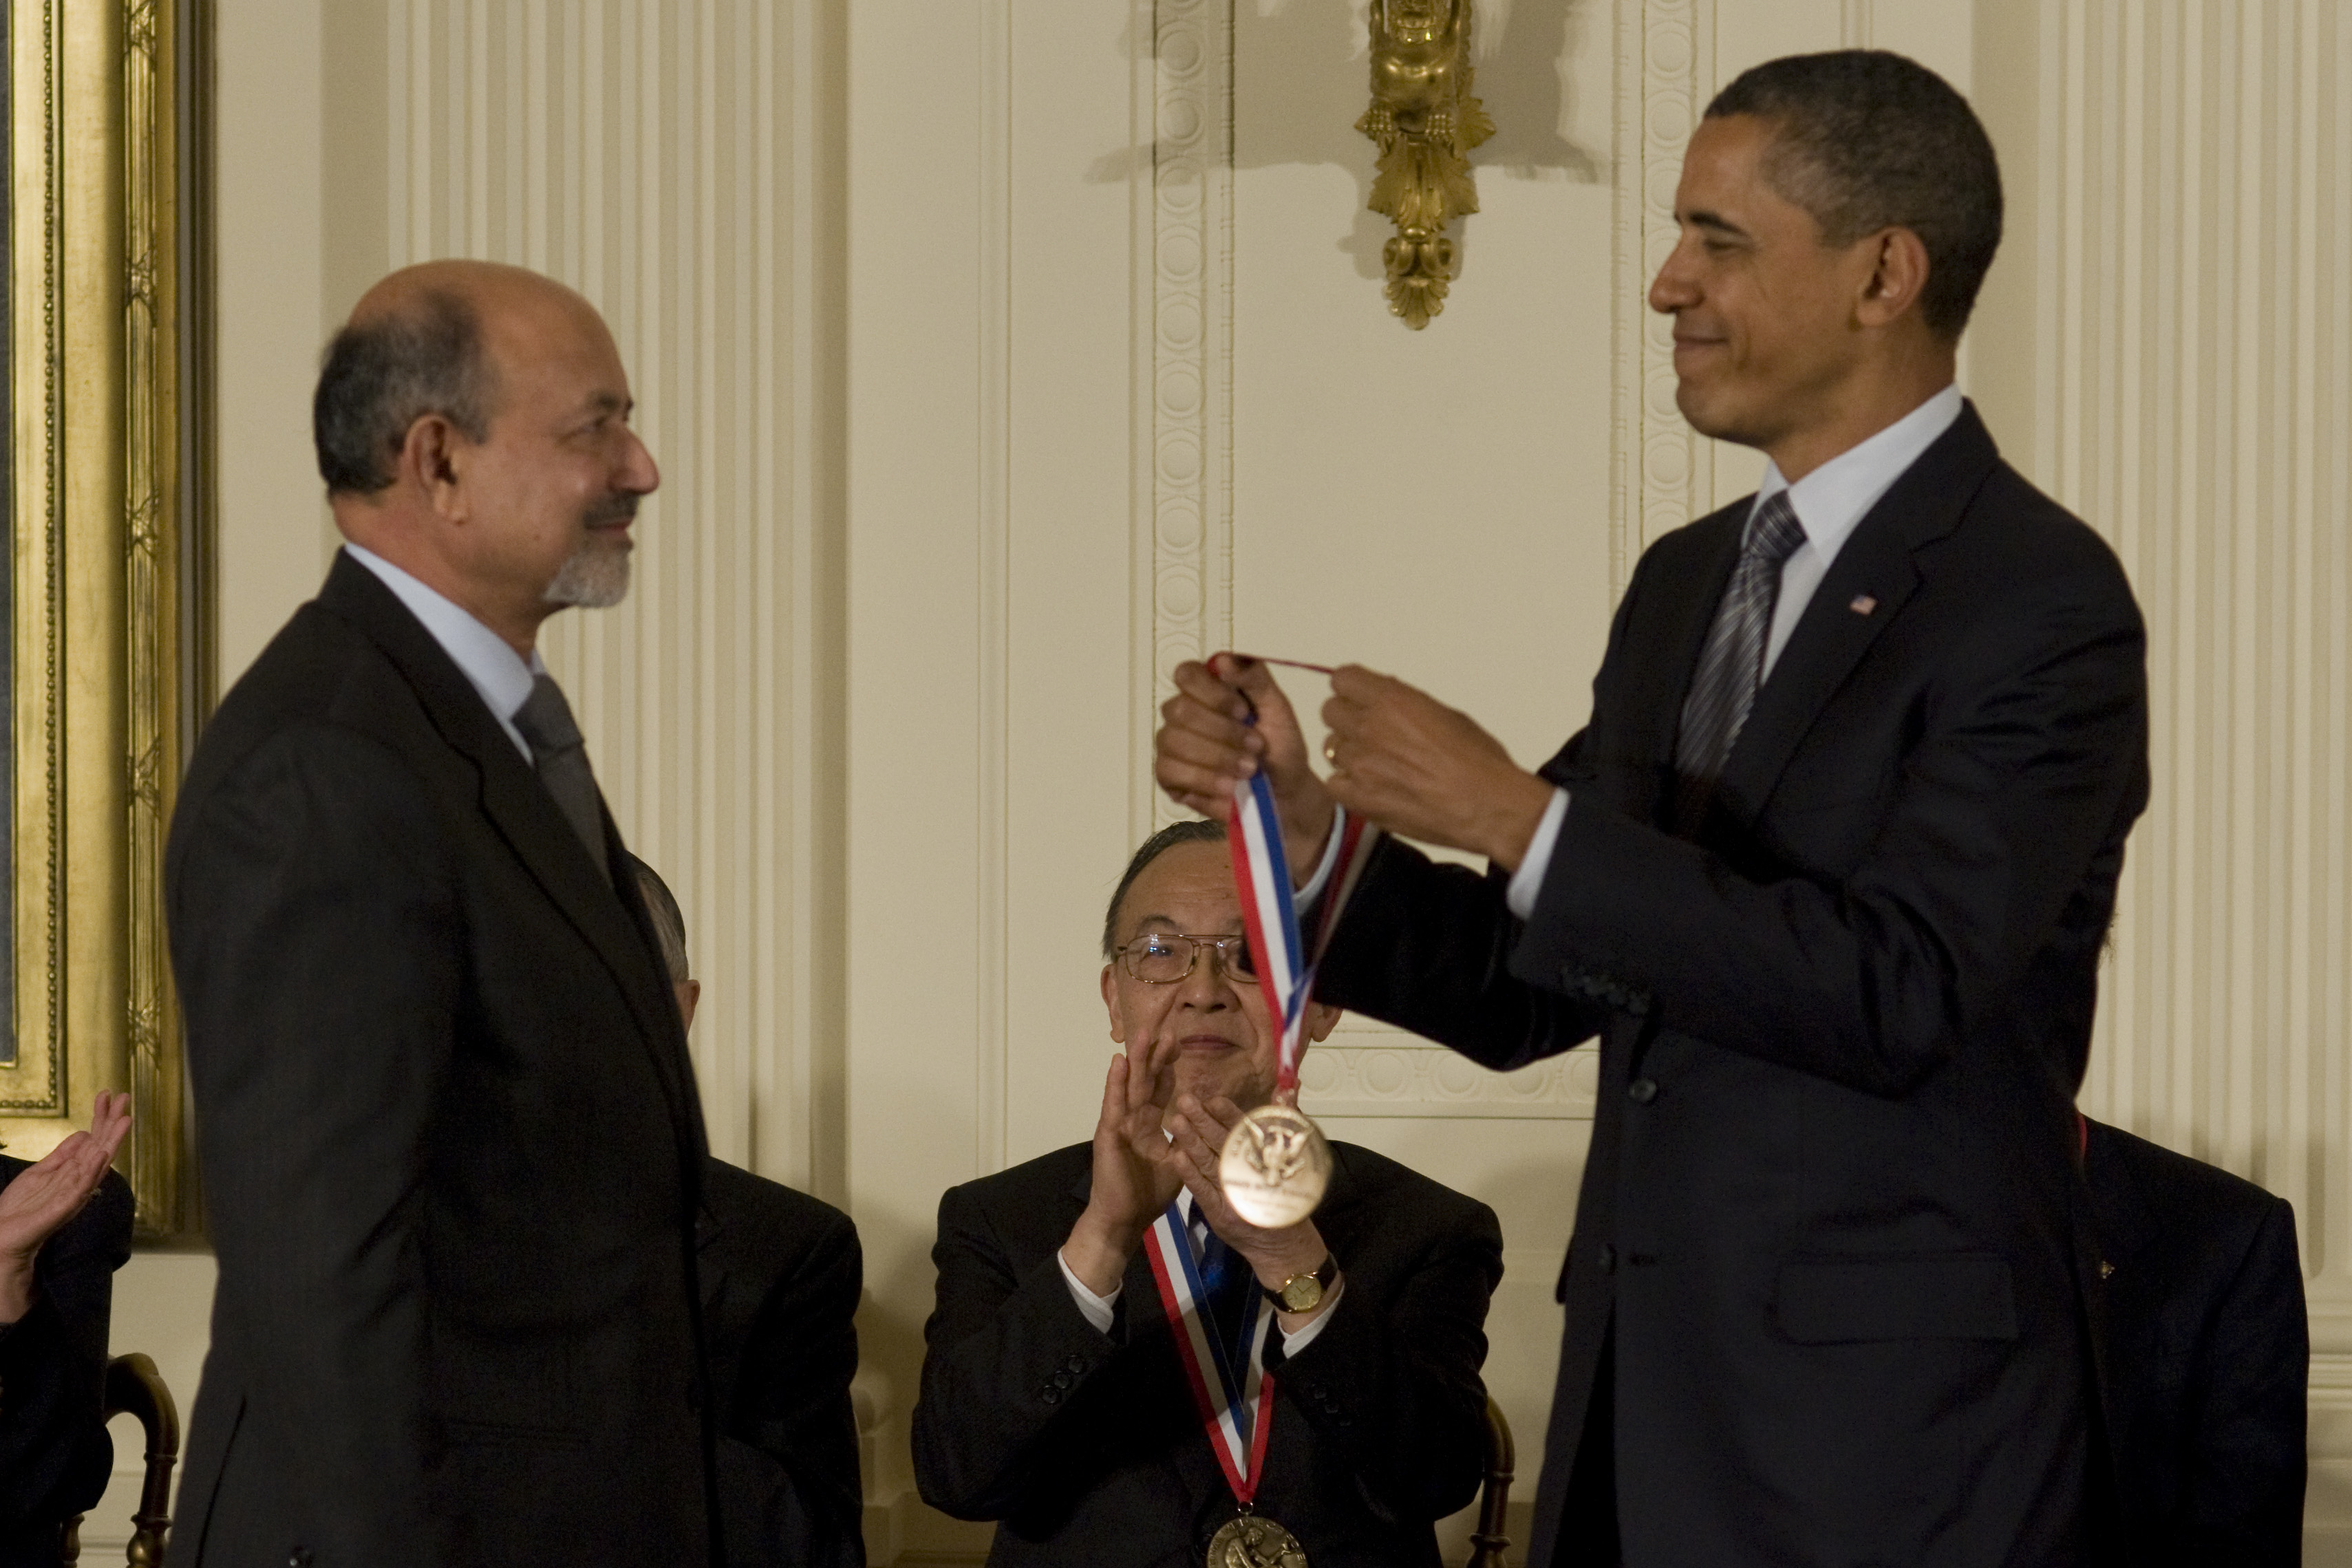 Jayant Baliga receives medal from President Obama